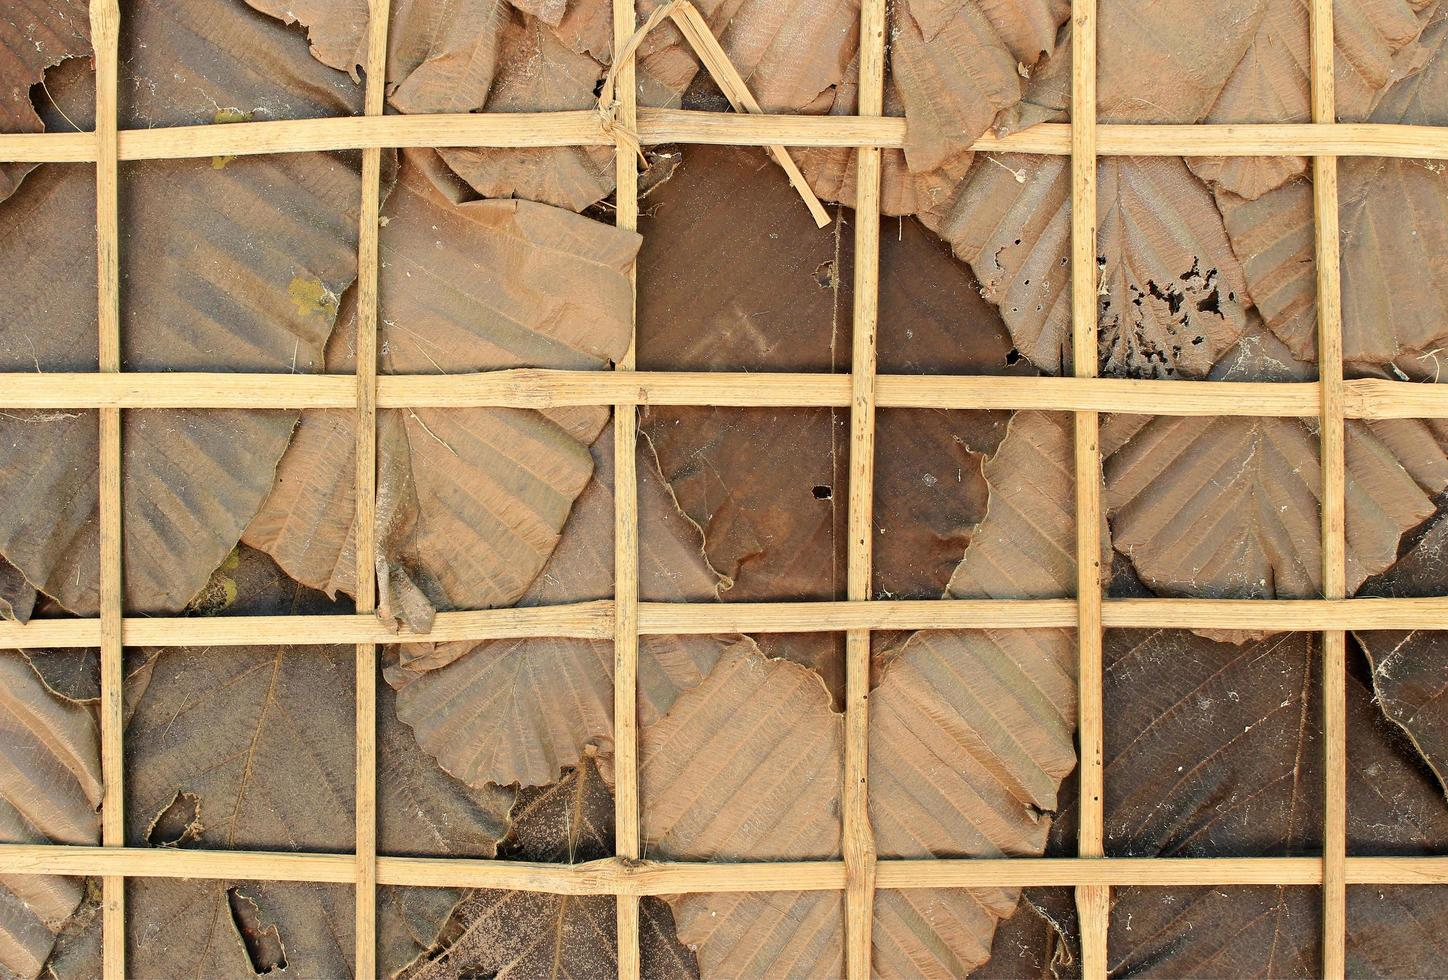 Dry leaves and weaved bamboo photo